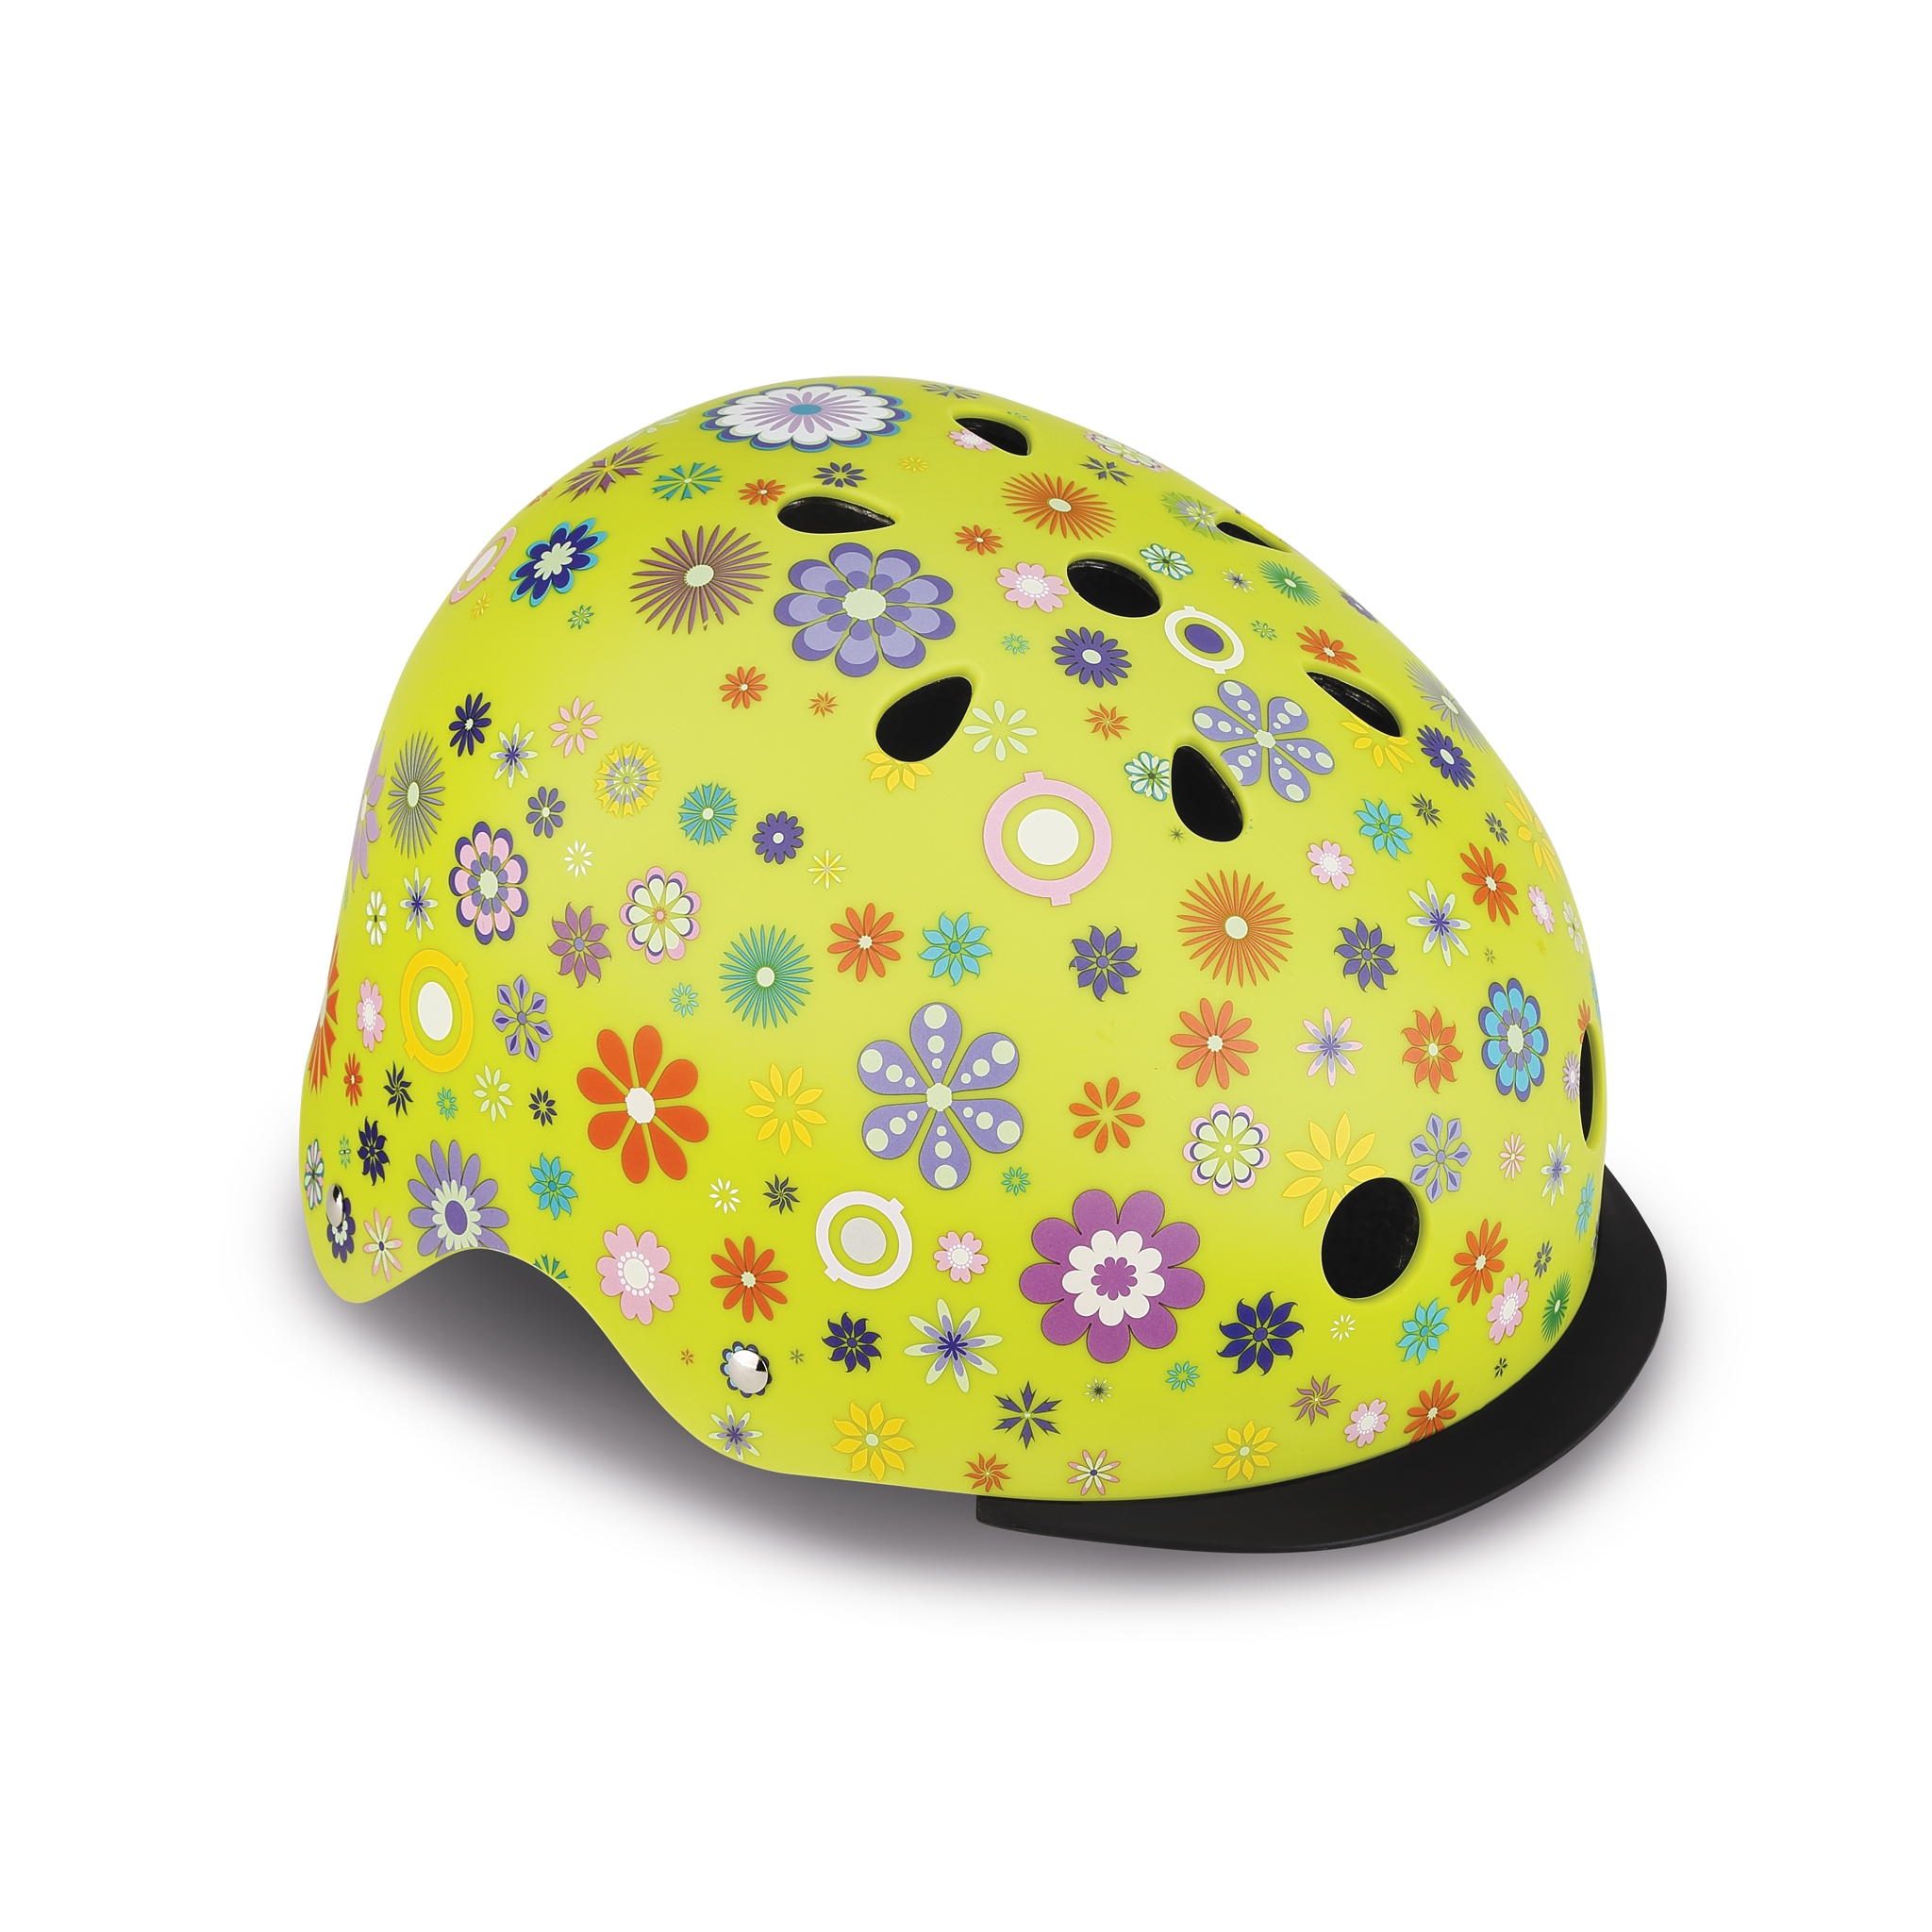 ELITE-helmets-scooter-helmets-for-kids-in-mold-polycarbonate-outer-shell-lime-green